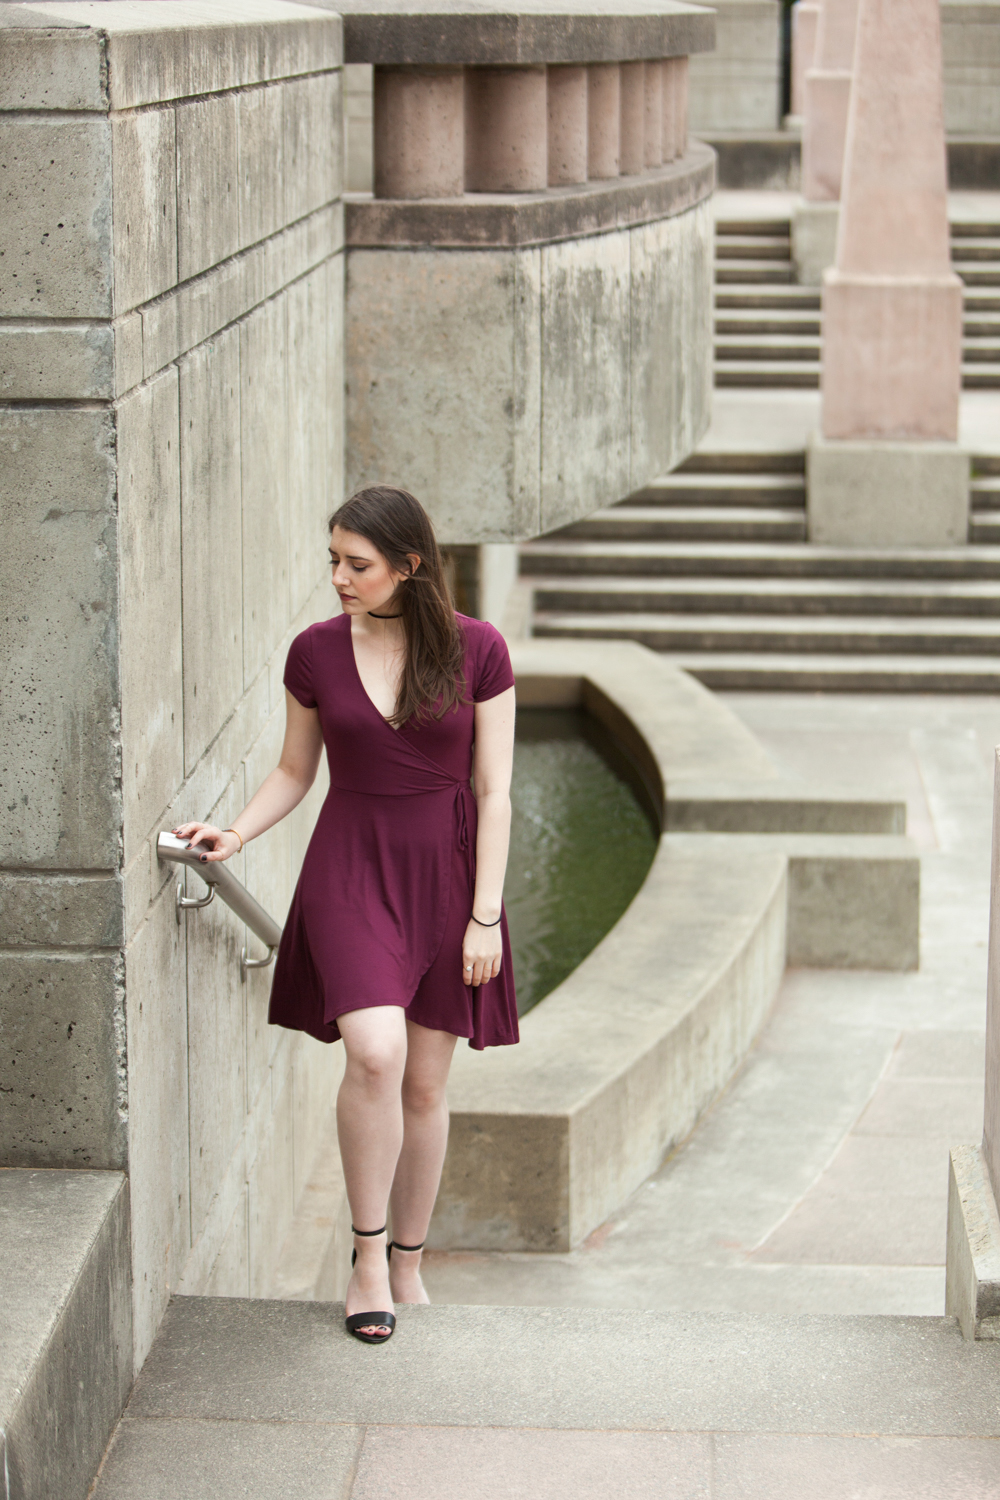 Faux wrap dress outfit - Urban Outfitters Kimchi Blue Ballet Surplice Dress, Moorea Seal Jewelry 6